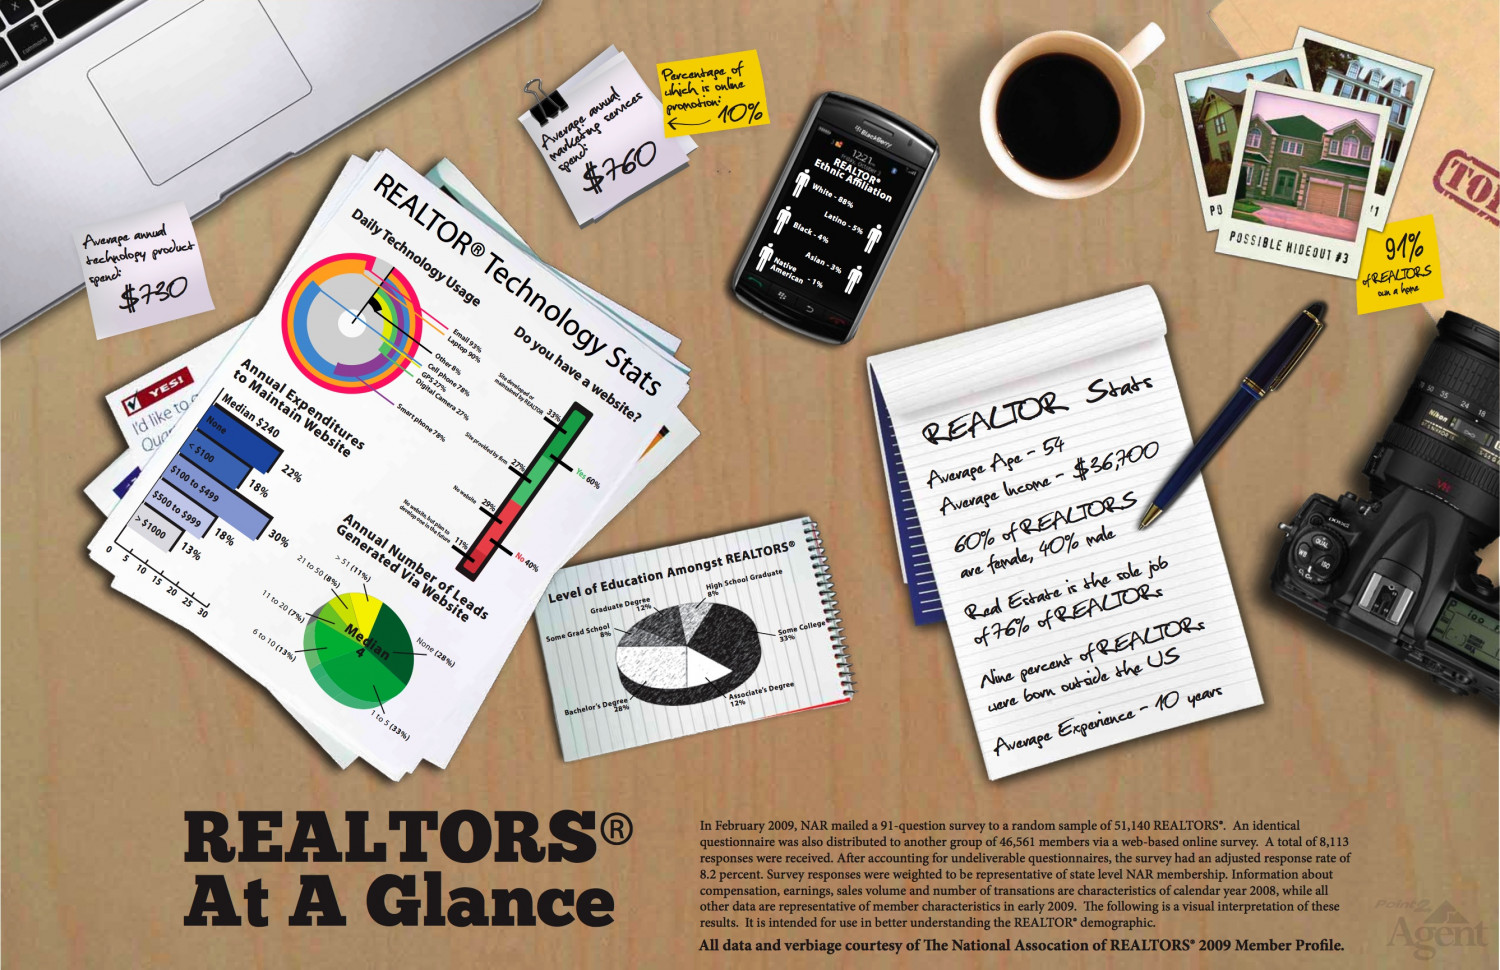 Realtors at a Glance Infographic